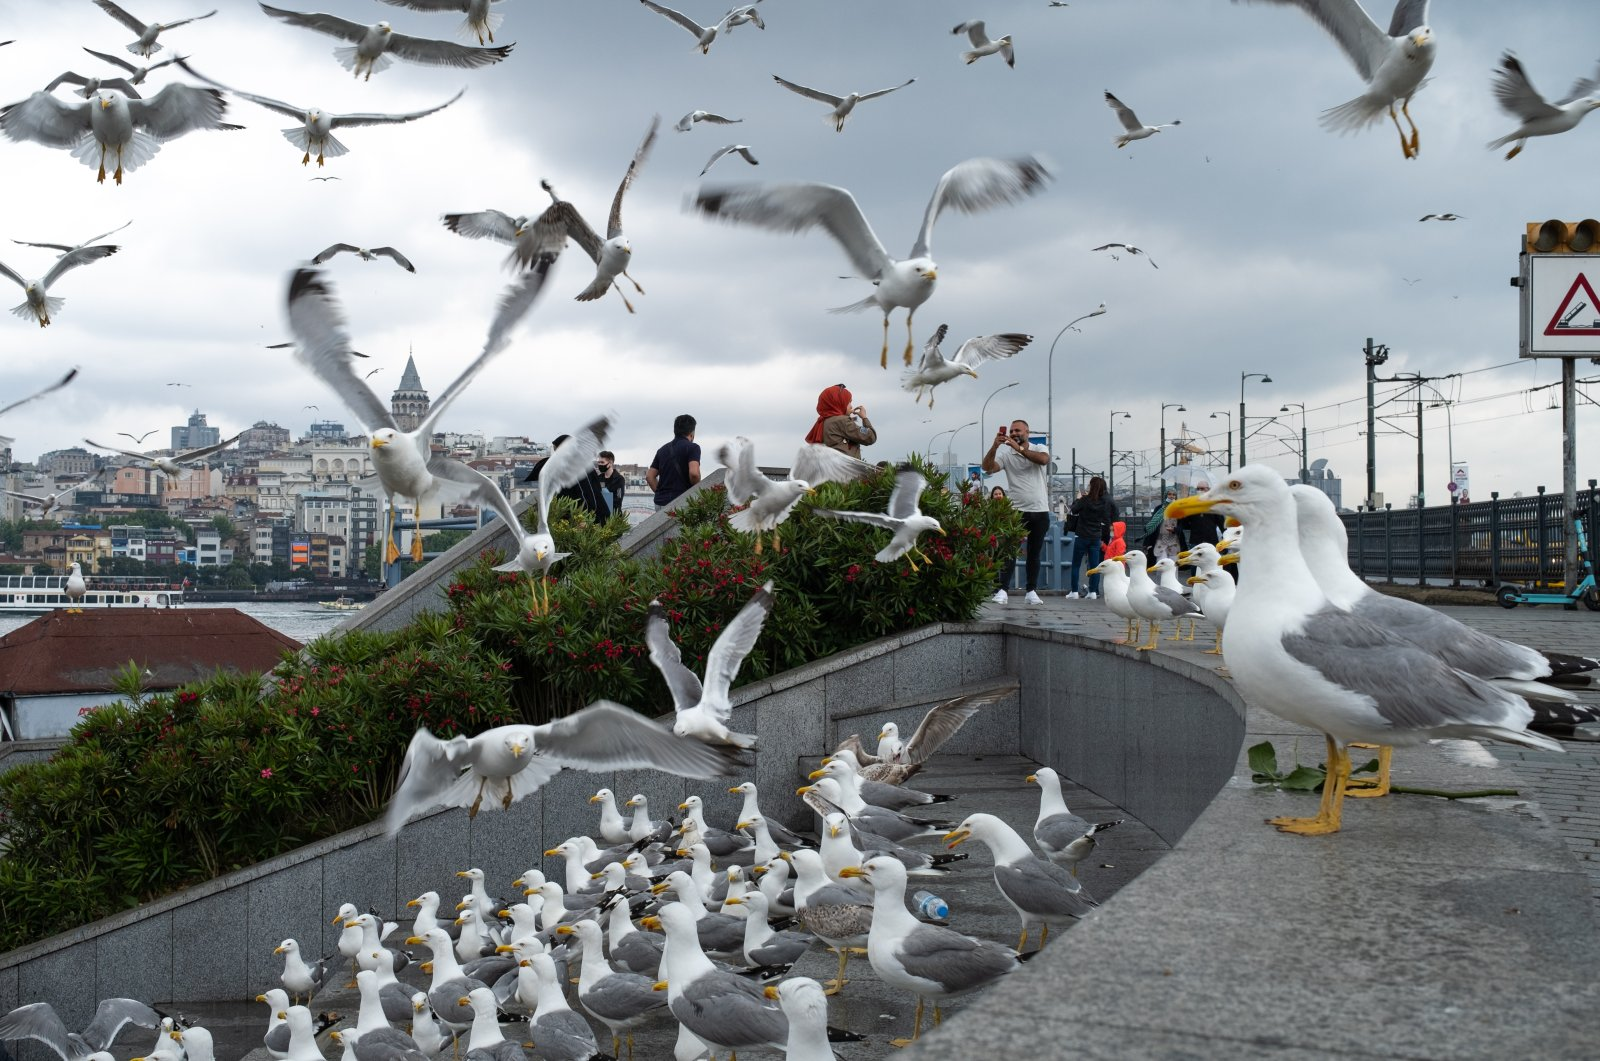 Tourists enjoy the city's flocks of seagulls amid the coronavirus lockdown for local citizens in the Eminönu district, Istanbul, Turkey, May 29, 2021. (Photo by Getty Images)